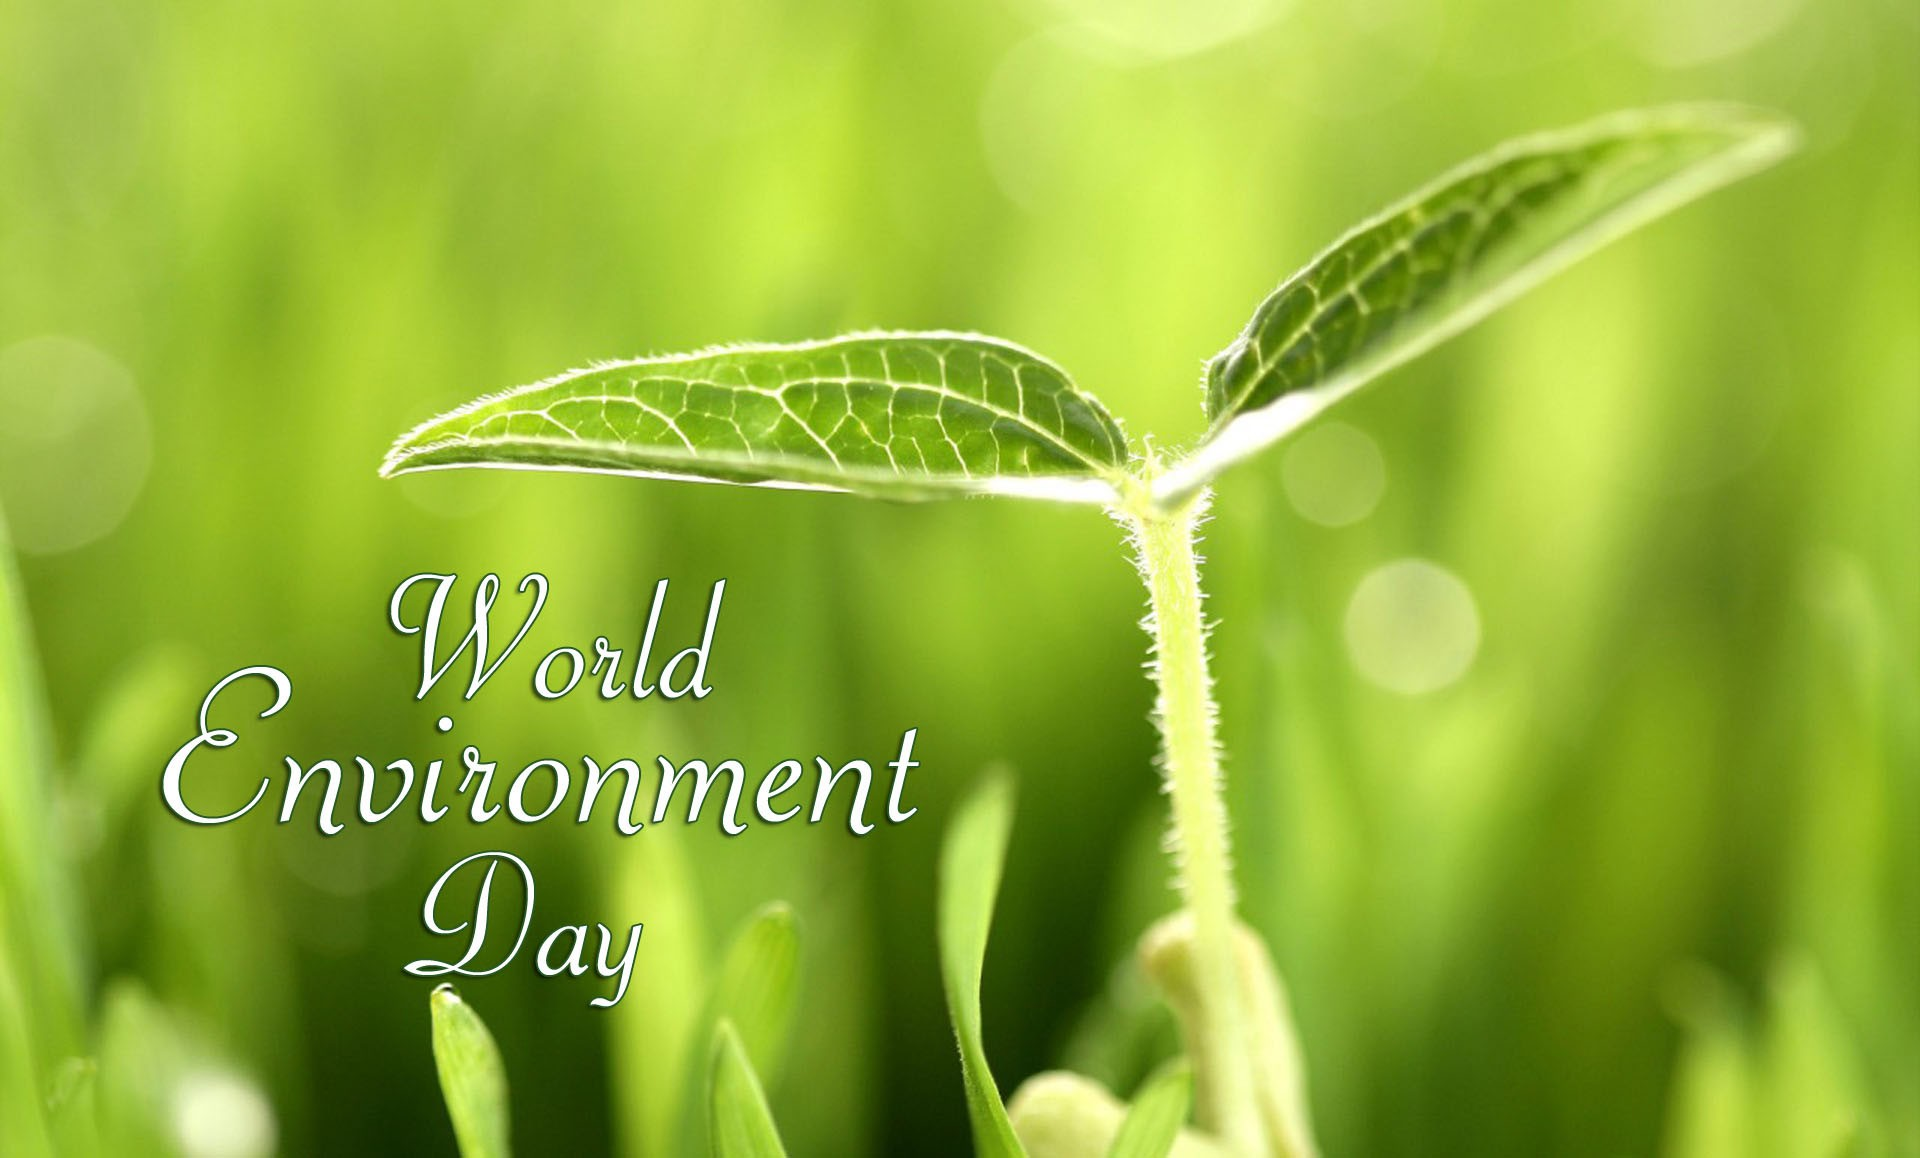 World Environment Day 2017 Wallpaper free download